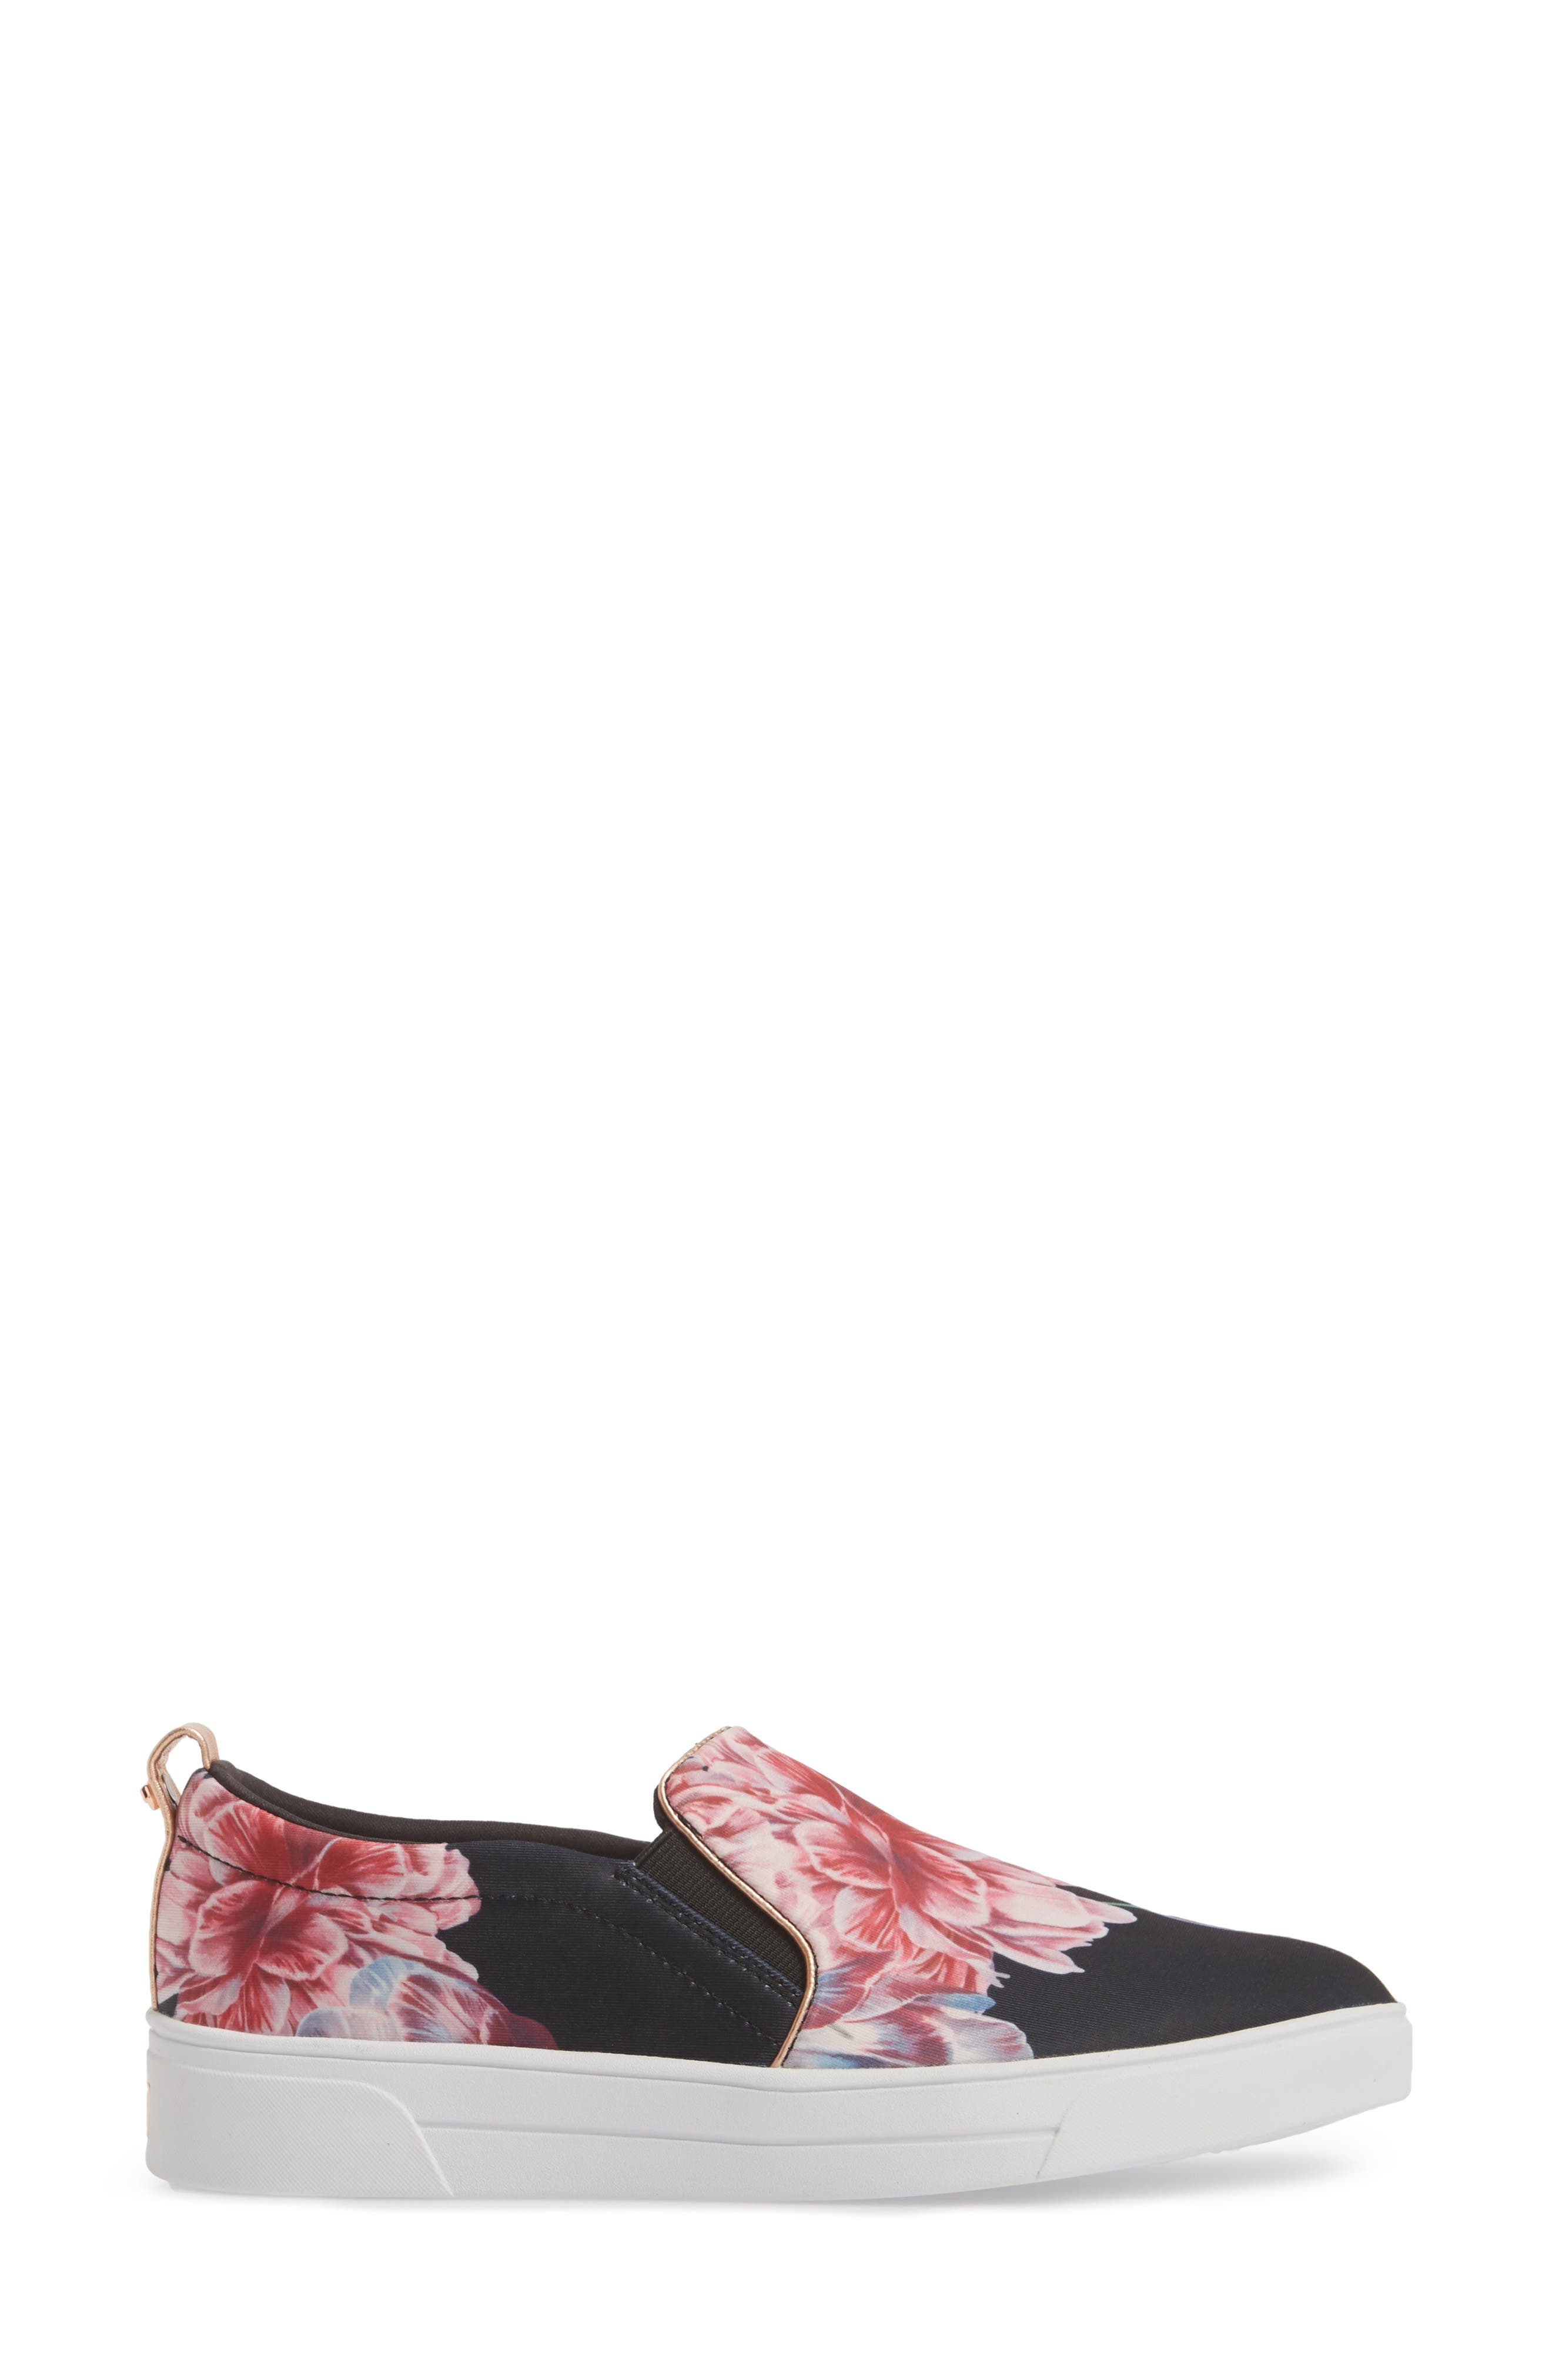 Tancey Slip-On Sneaker,                             Alternate thumbnail 3, color,                             Black Tranquility Fabric